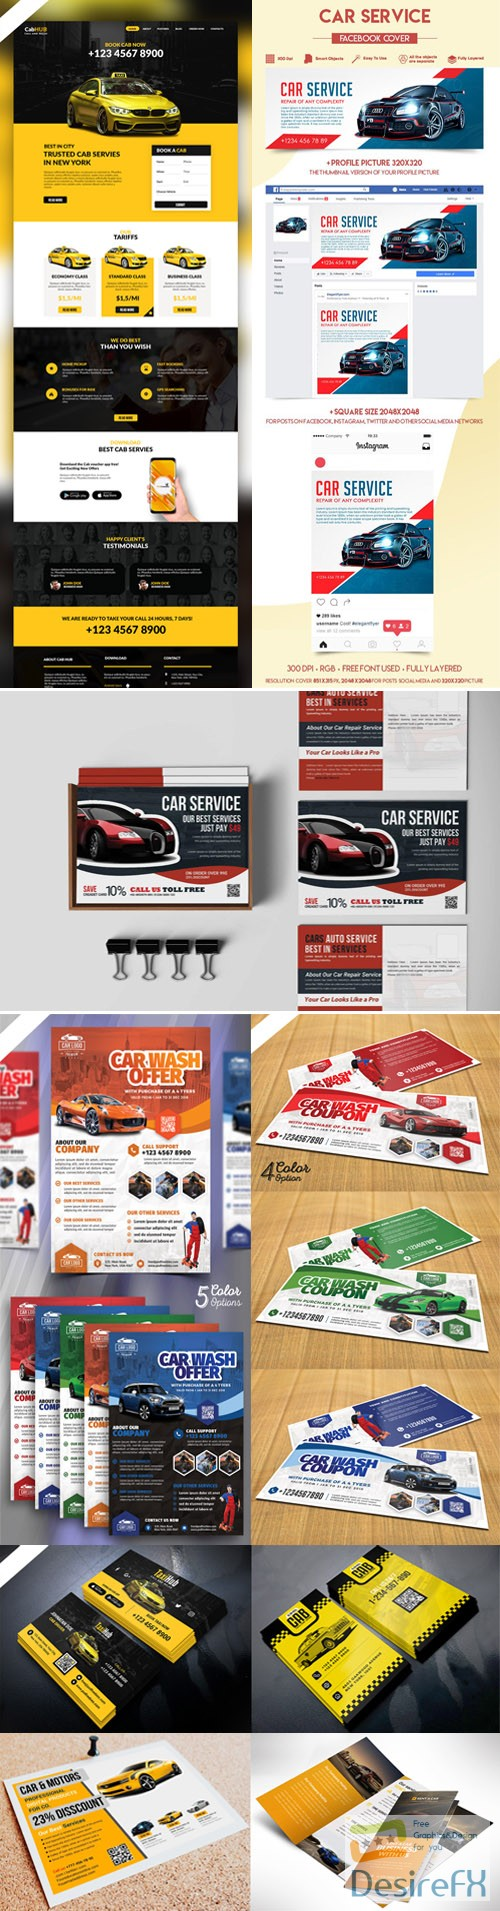 layered-psd - Collection of Cars Services PSD Templates